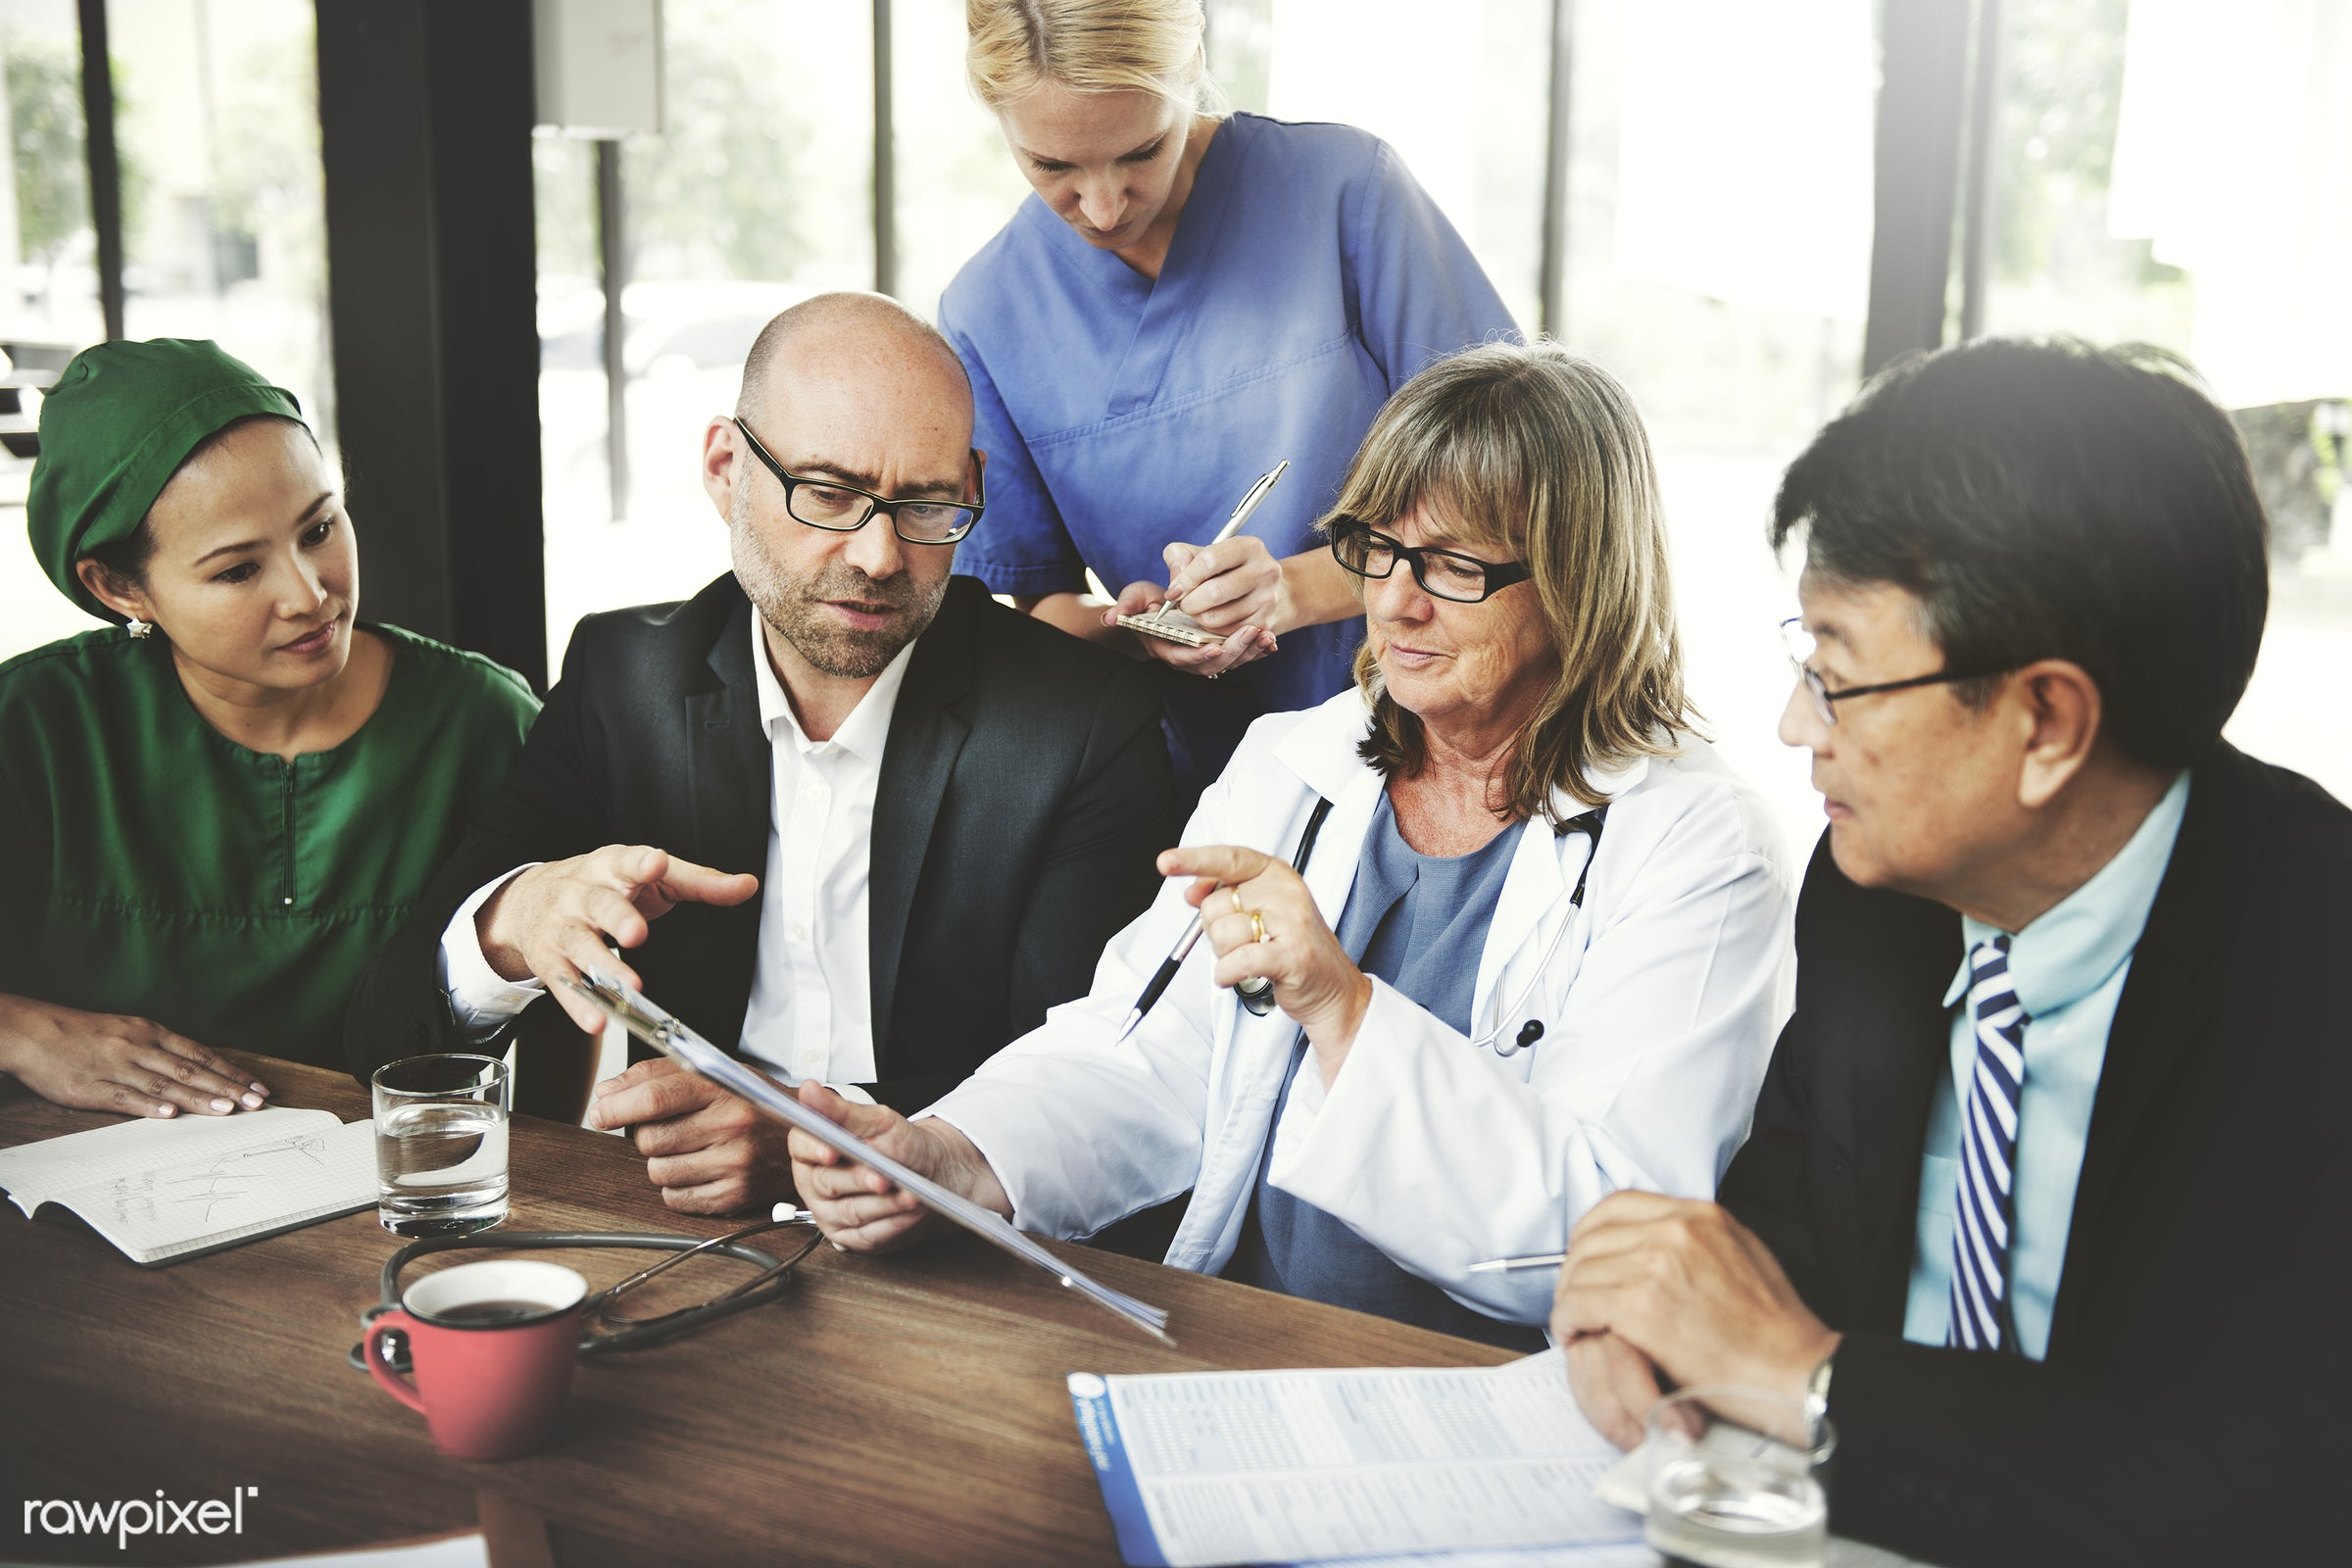 Group of medical people having a meeting - advice, analysis, boardroom, brainstorming, colleagues, communication, conference...